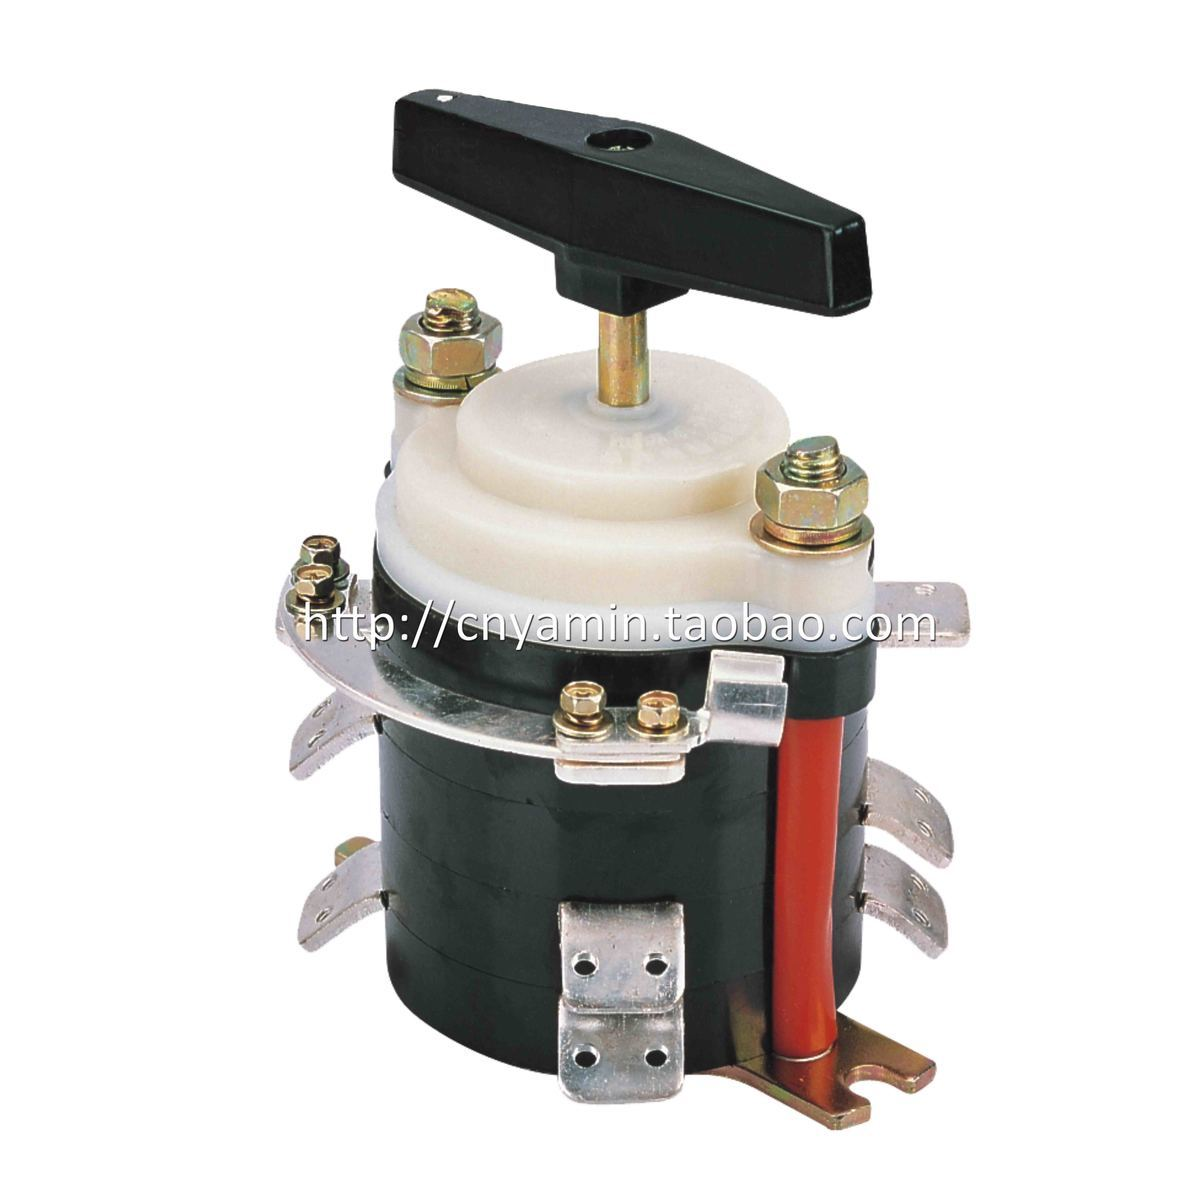 KDH-160A Welding Machine Switch BX3-500 Will Current Rotating Knob 4 Layer presidential nominee will address a gathering